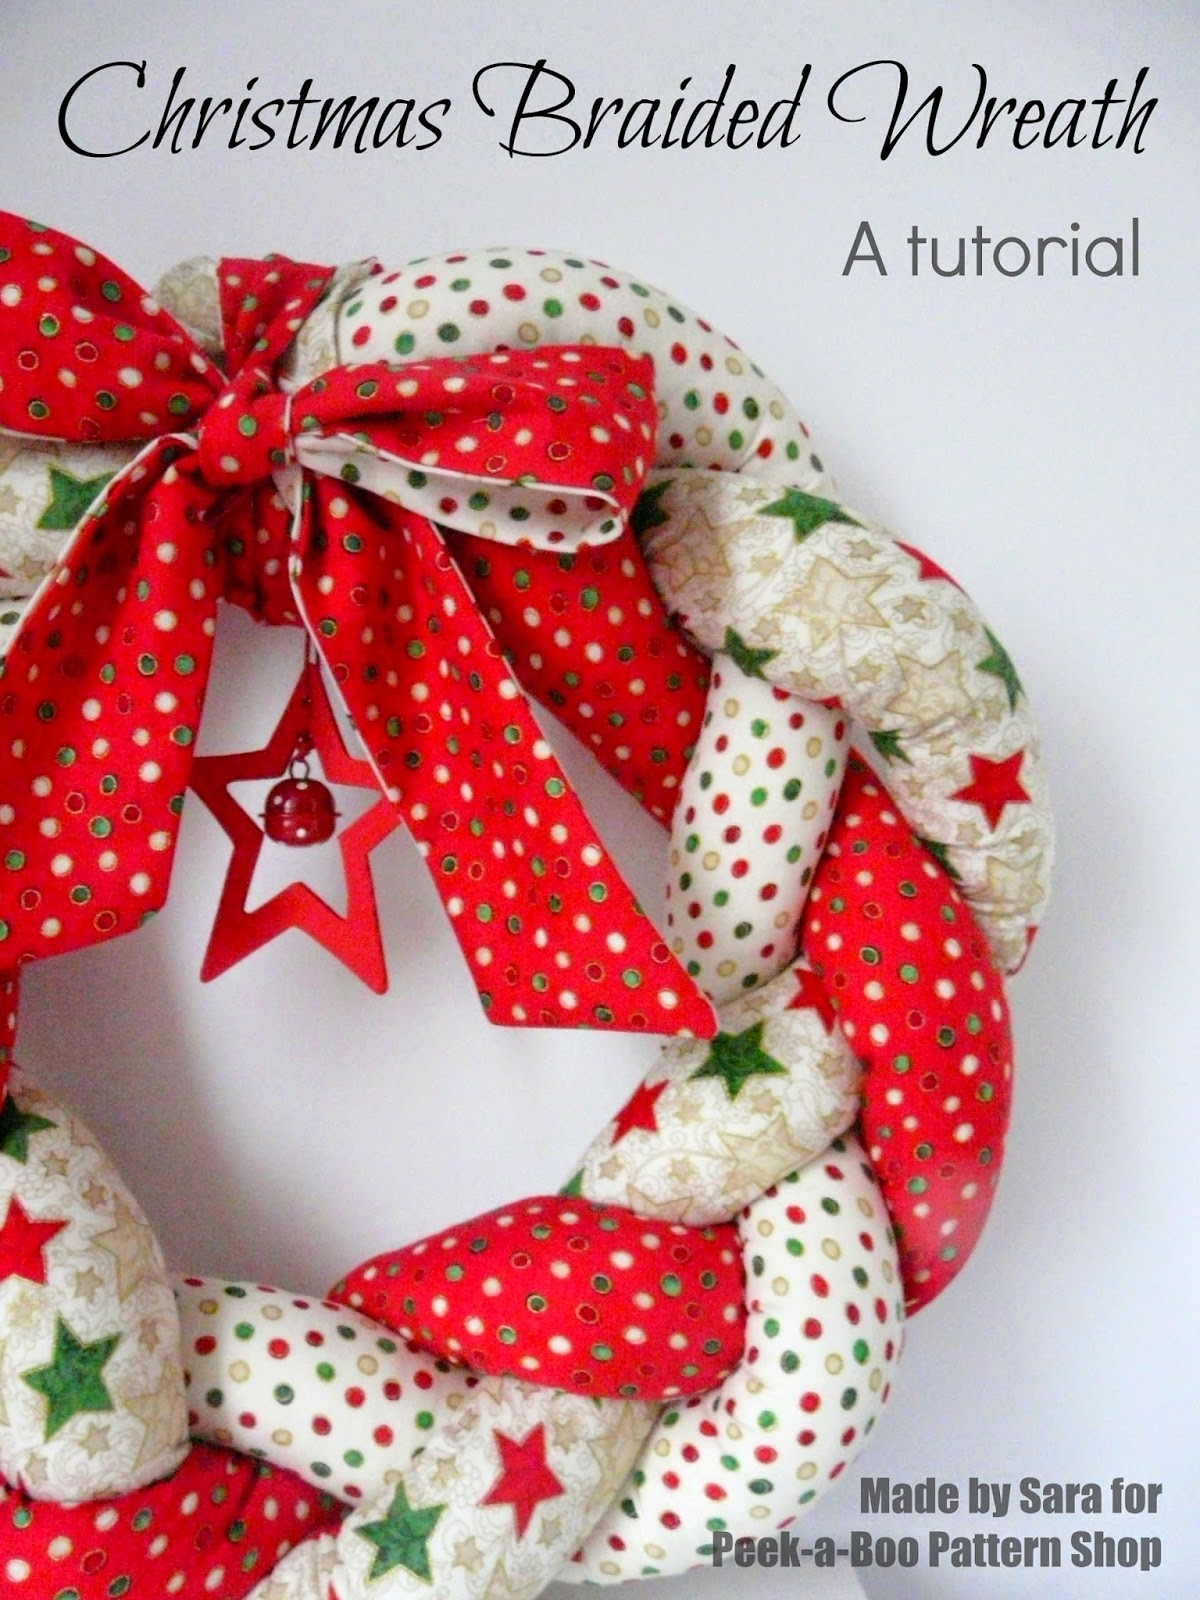 Christmas Braided Wreath - a tutorial - Peek-a-Boo Pages - Patterns, Fabric & More!